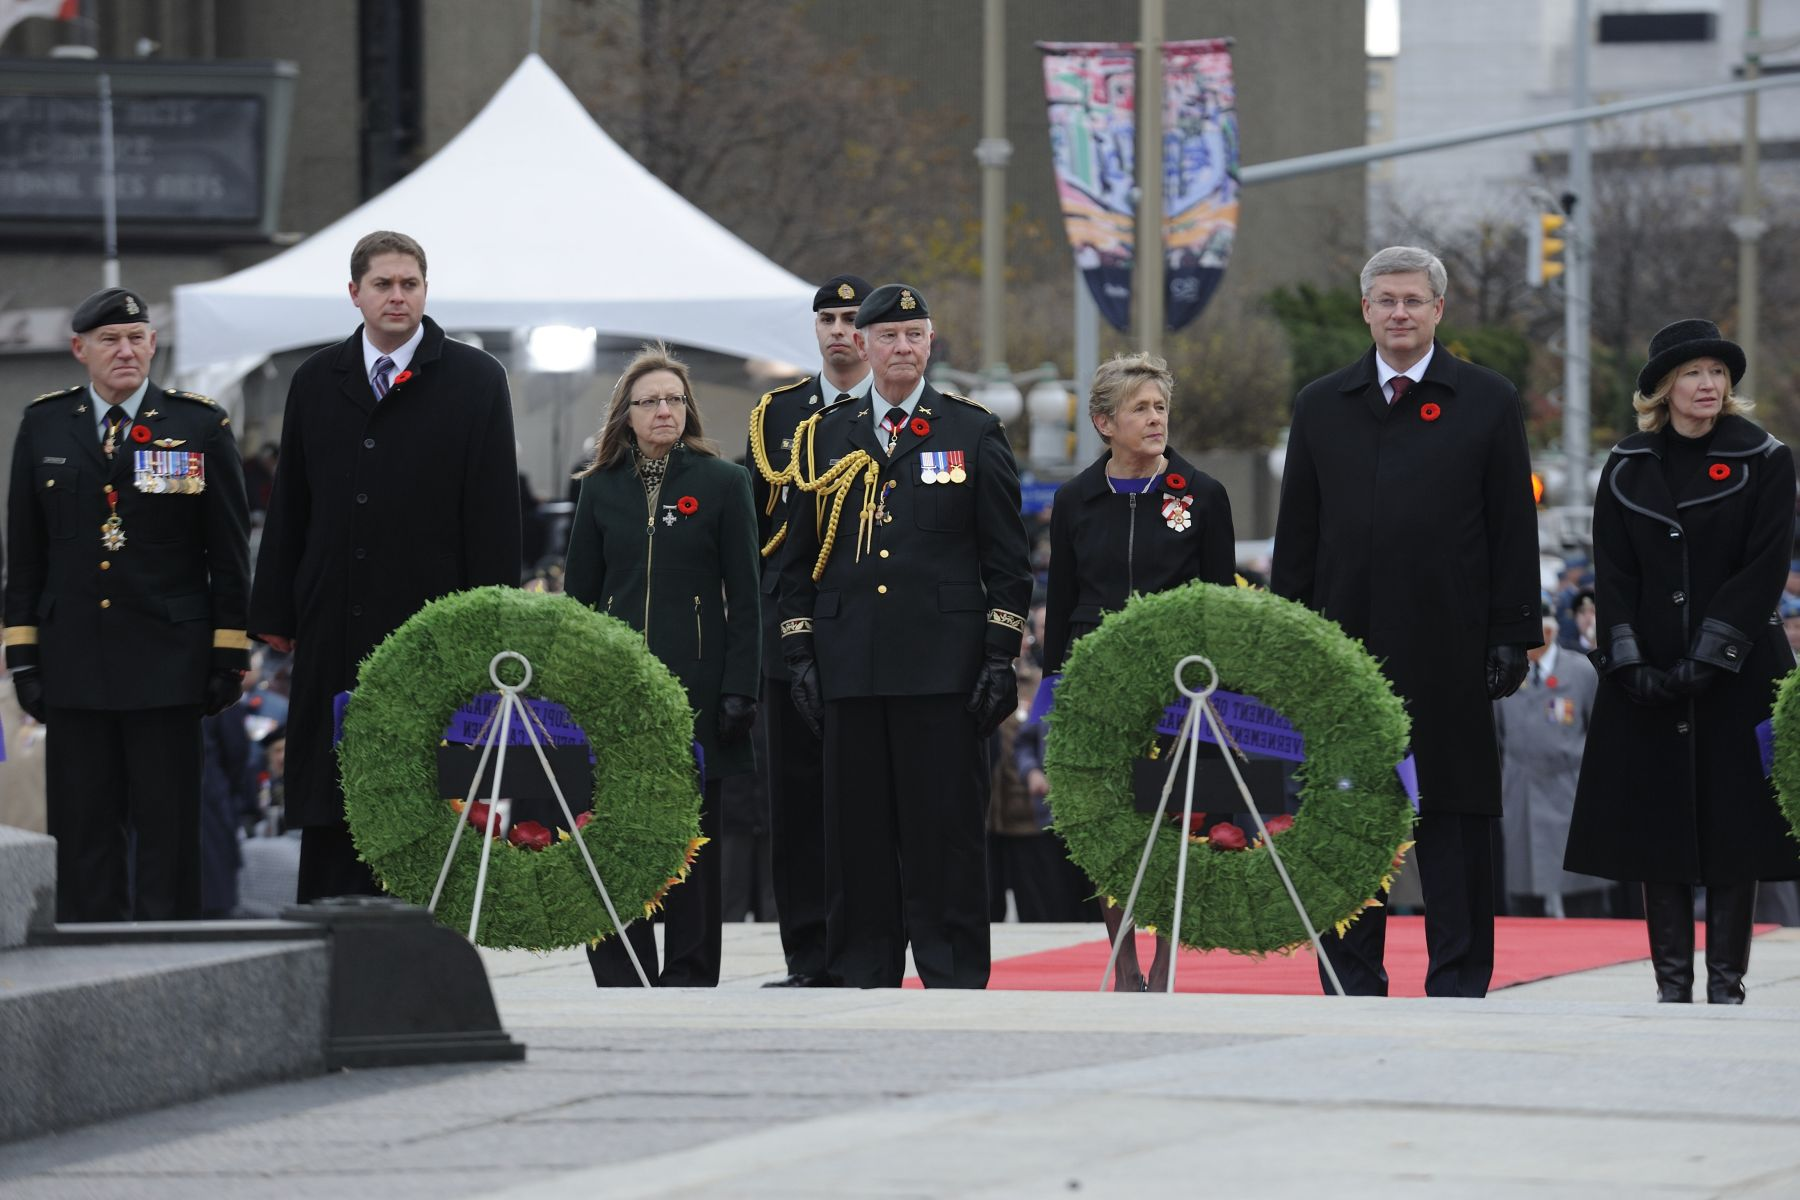 Their Excellencies observed one minute of silience during the National Remembrance Day Ceremony at the National War Memorial in Ottawa.